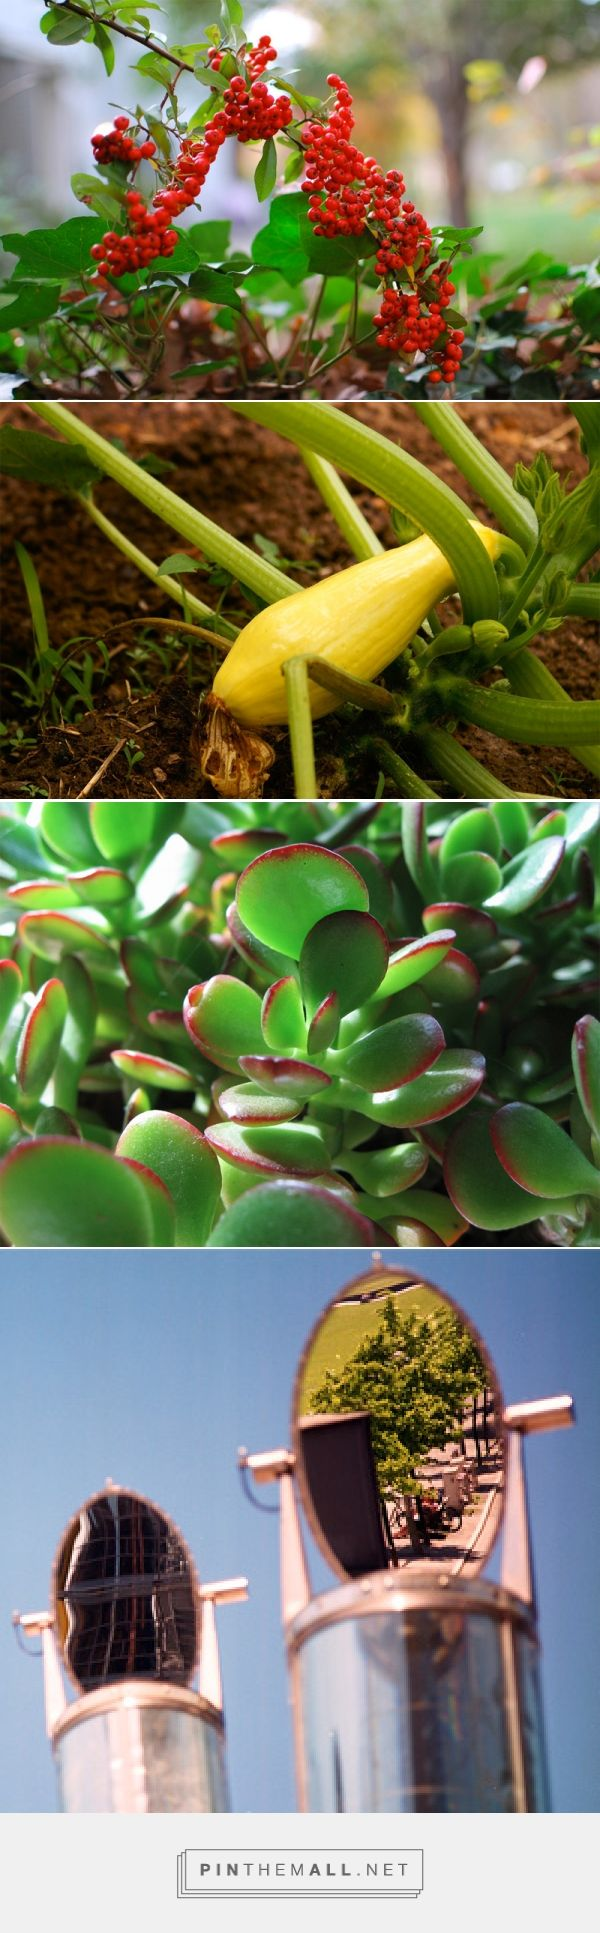 464 best plants images on pinterest gardening plants and